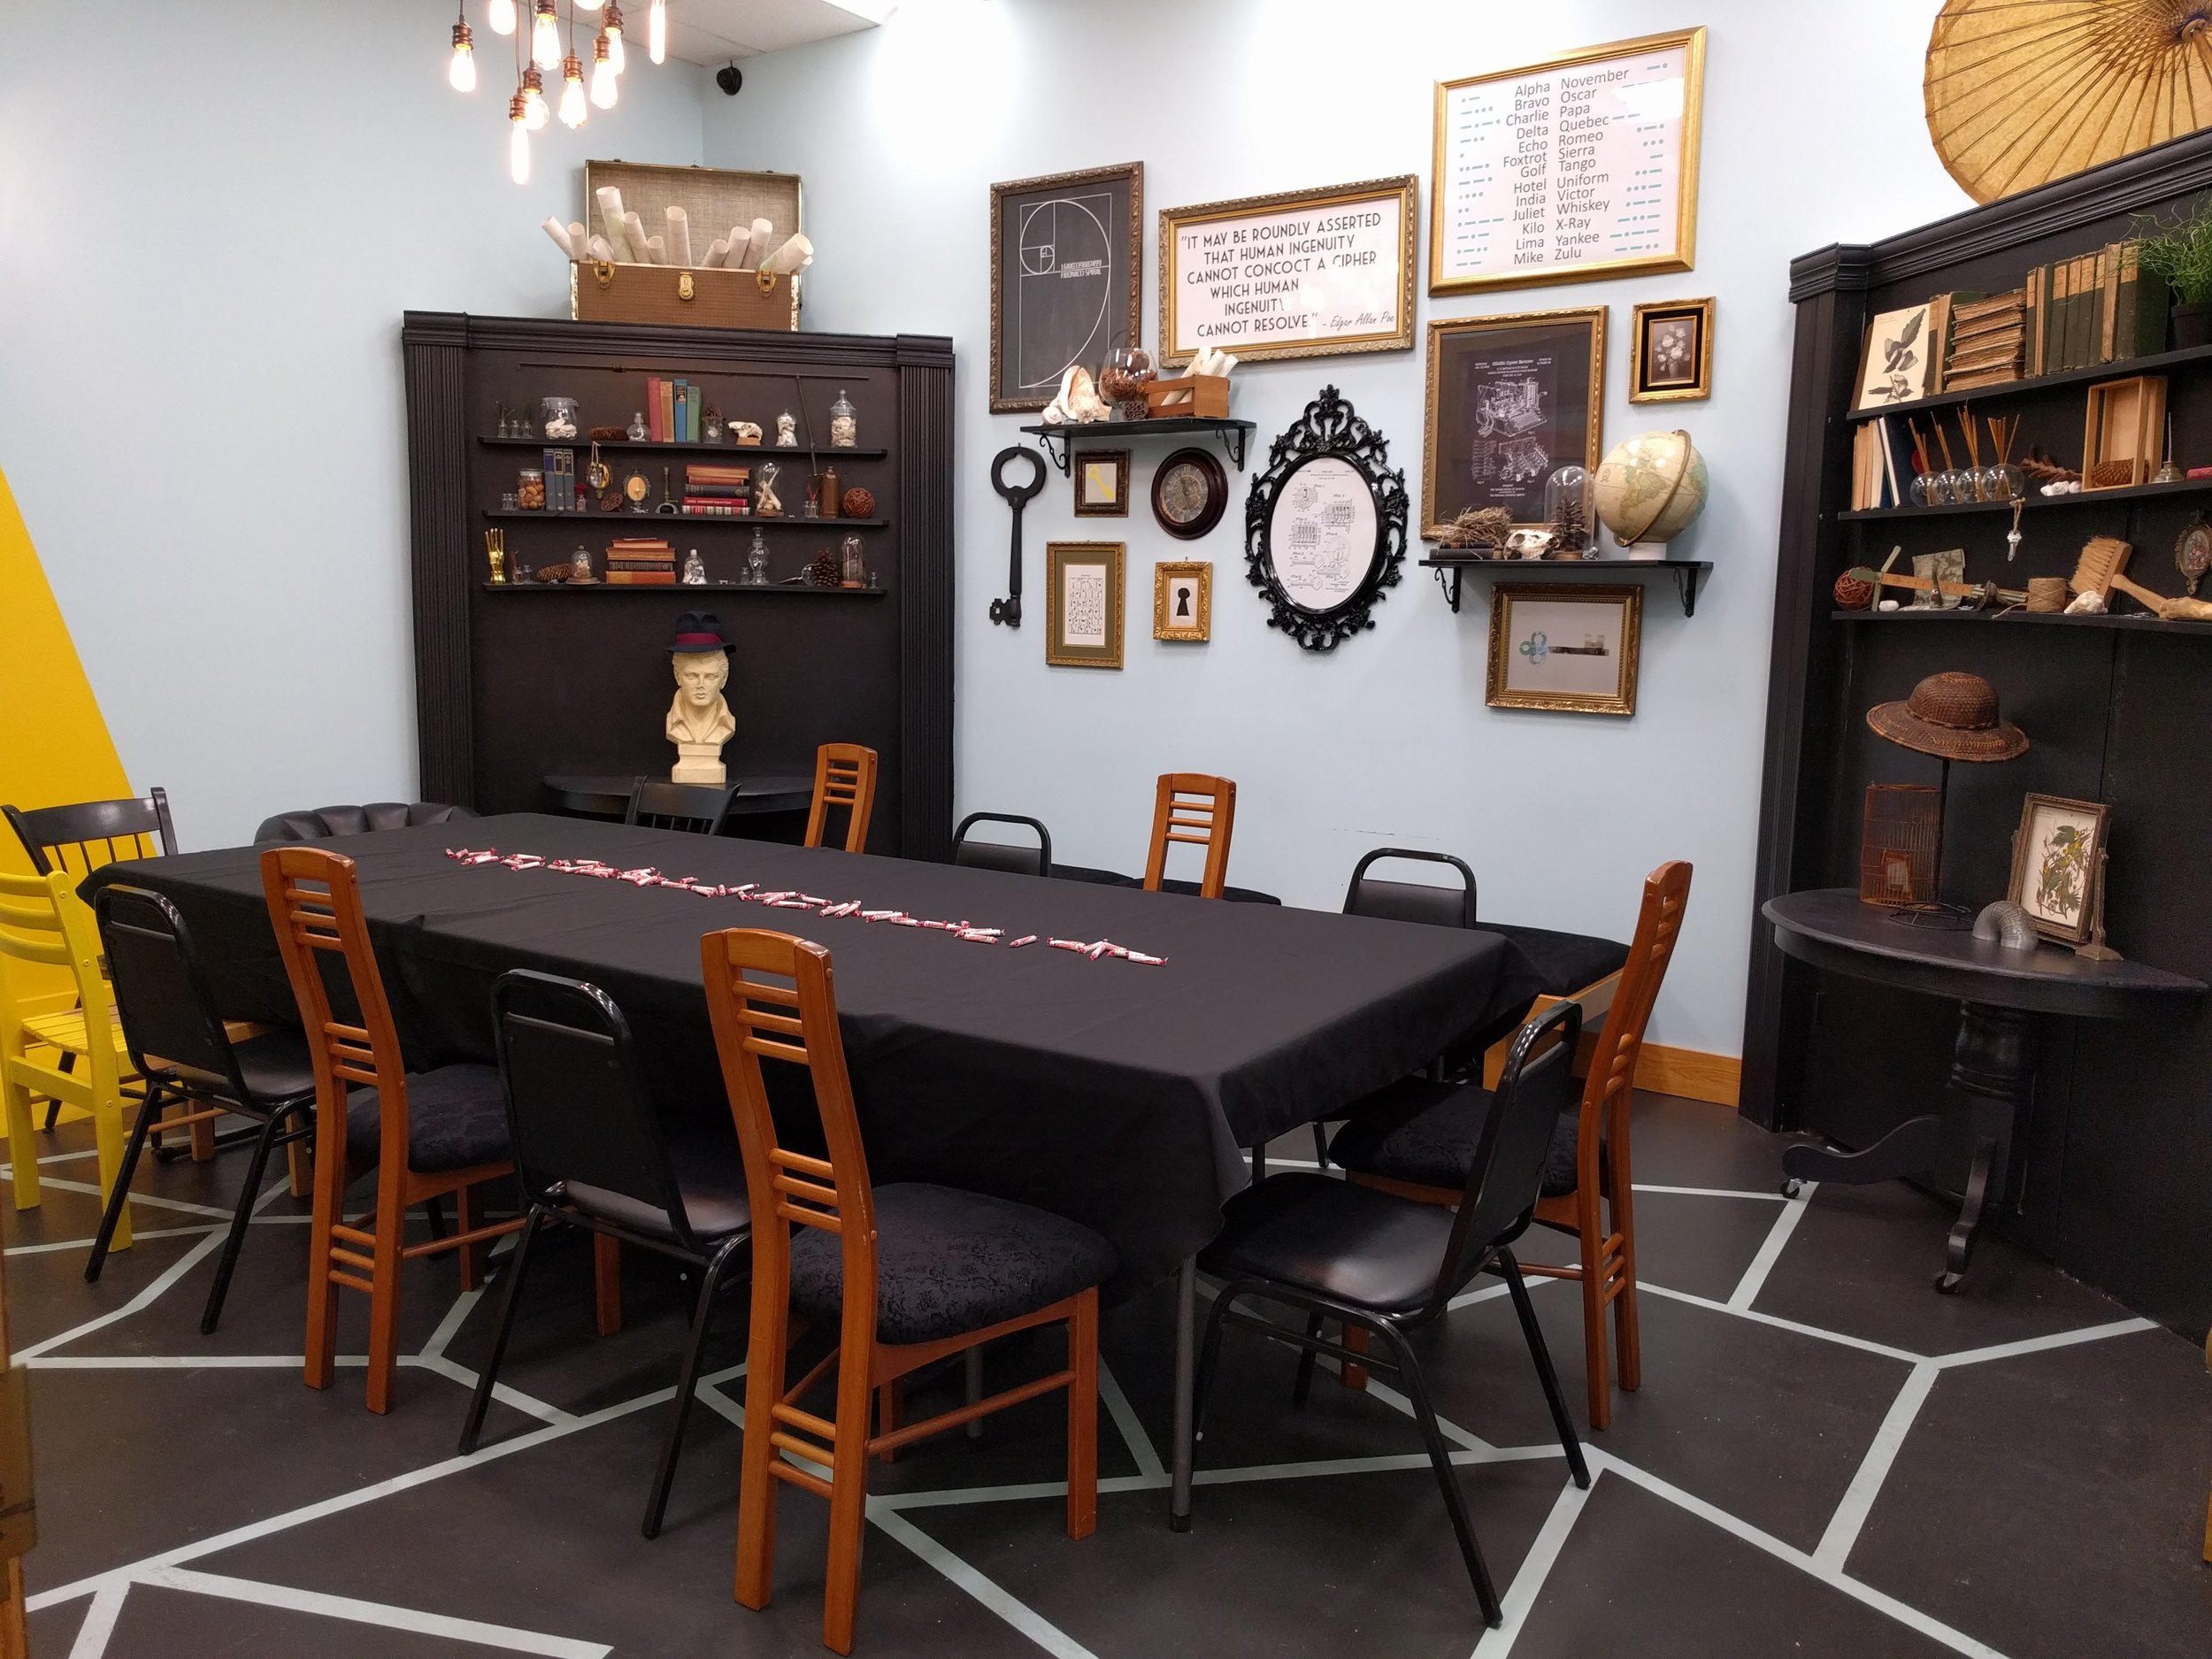 escape rooms Bloomington Indiana room escape downtown Bloomington Fountain Square Mall fun things to do with family parents kids team-building